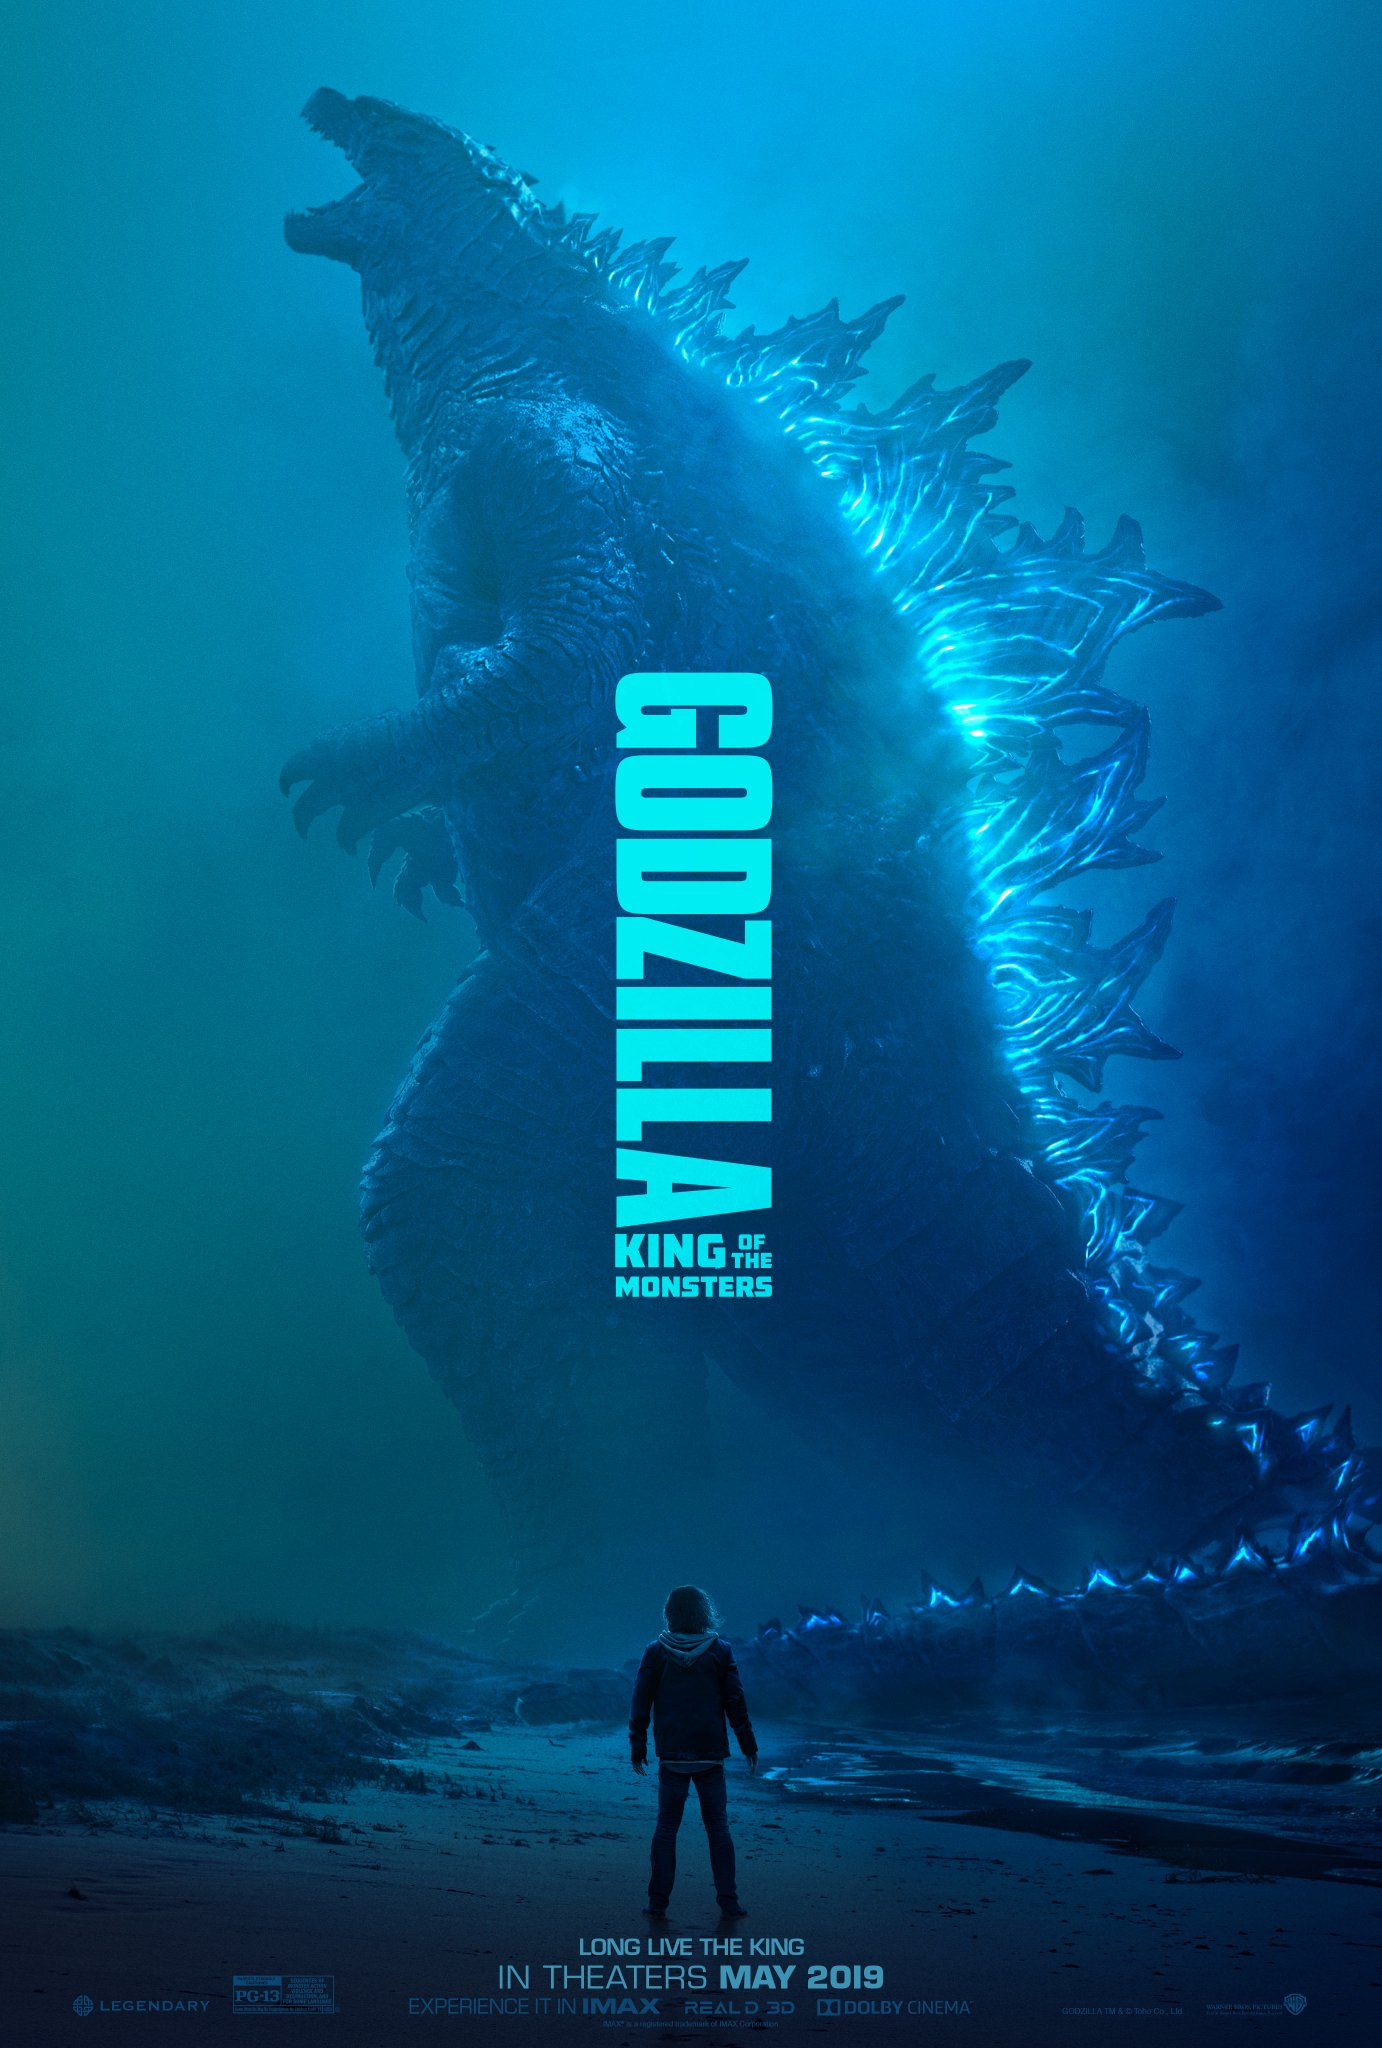 godzilla king of the monsters poster - Segundo trailer de Godzilla: El Rey de los Monstruos